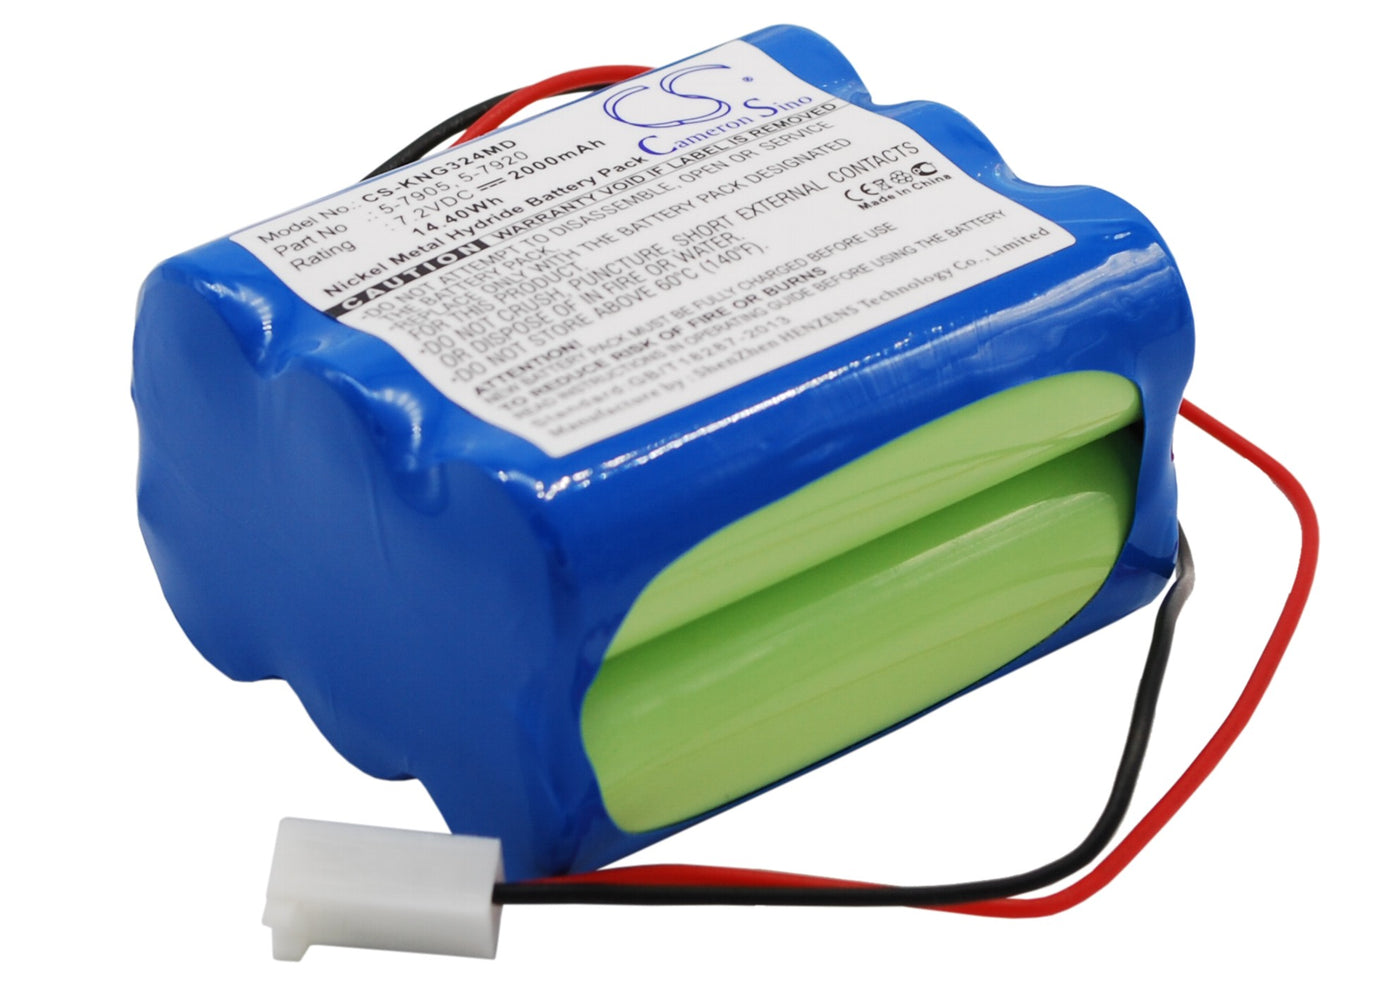 CS-KNG324MD Cameron Sino Battery